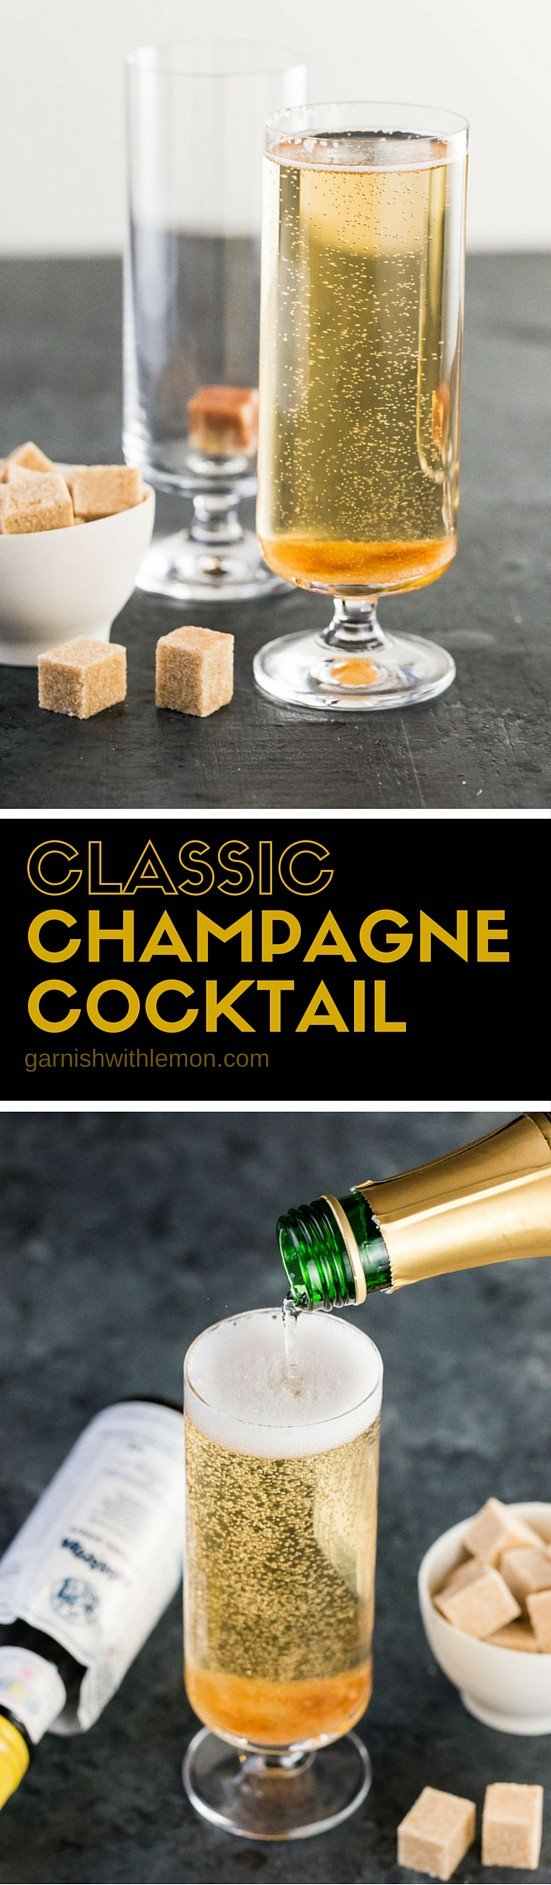 Two images of a Classic Champagne Cocktail